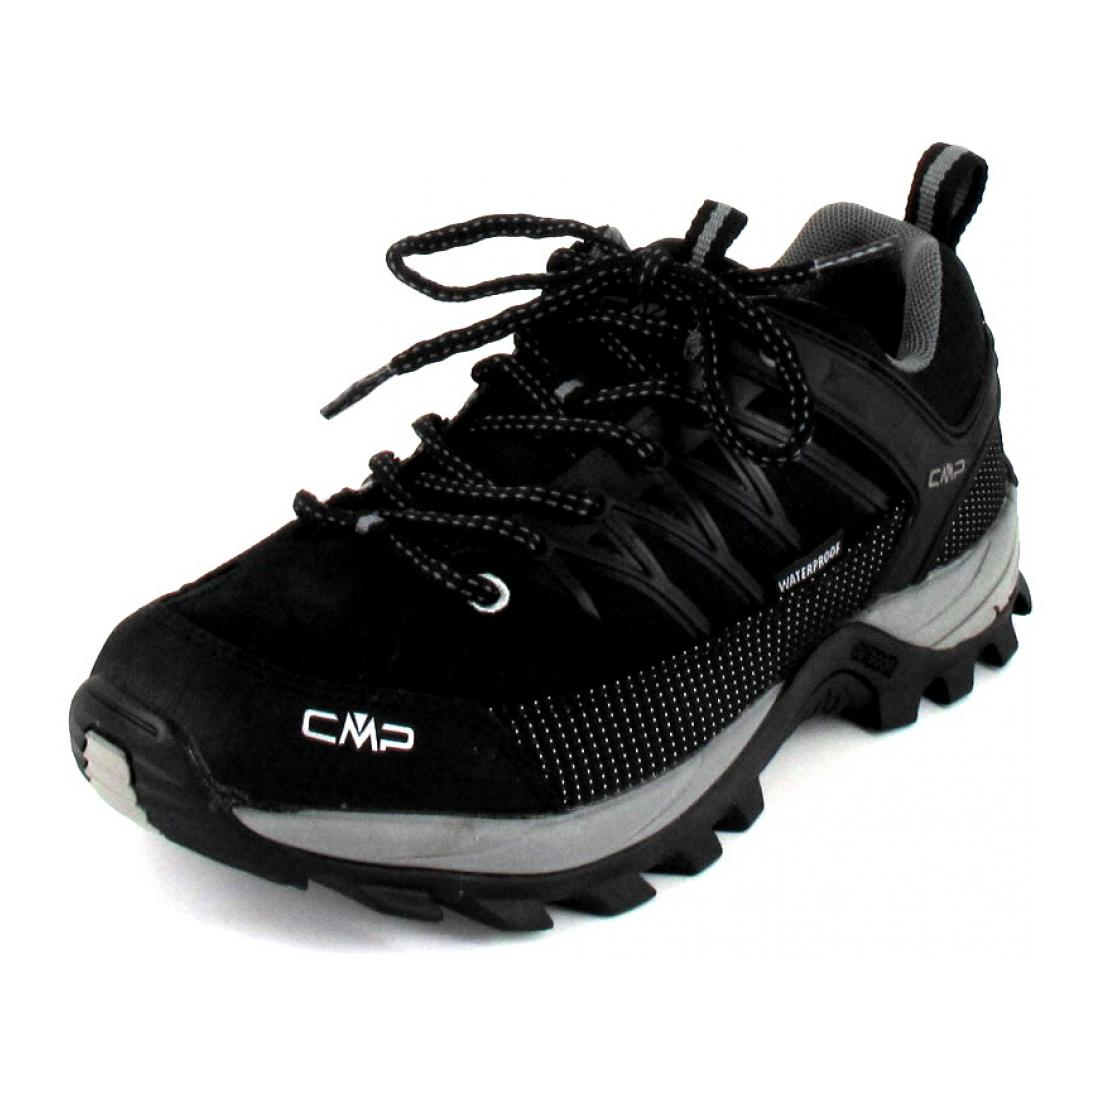 CMP Trekkingschuh Rigel Low Trekking ShoeWP